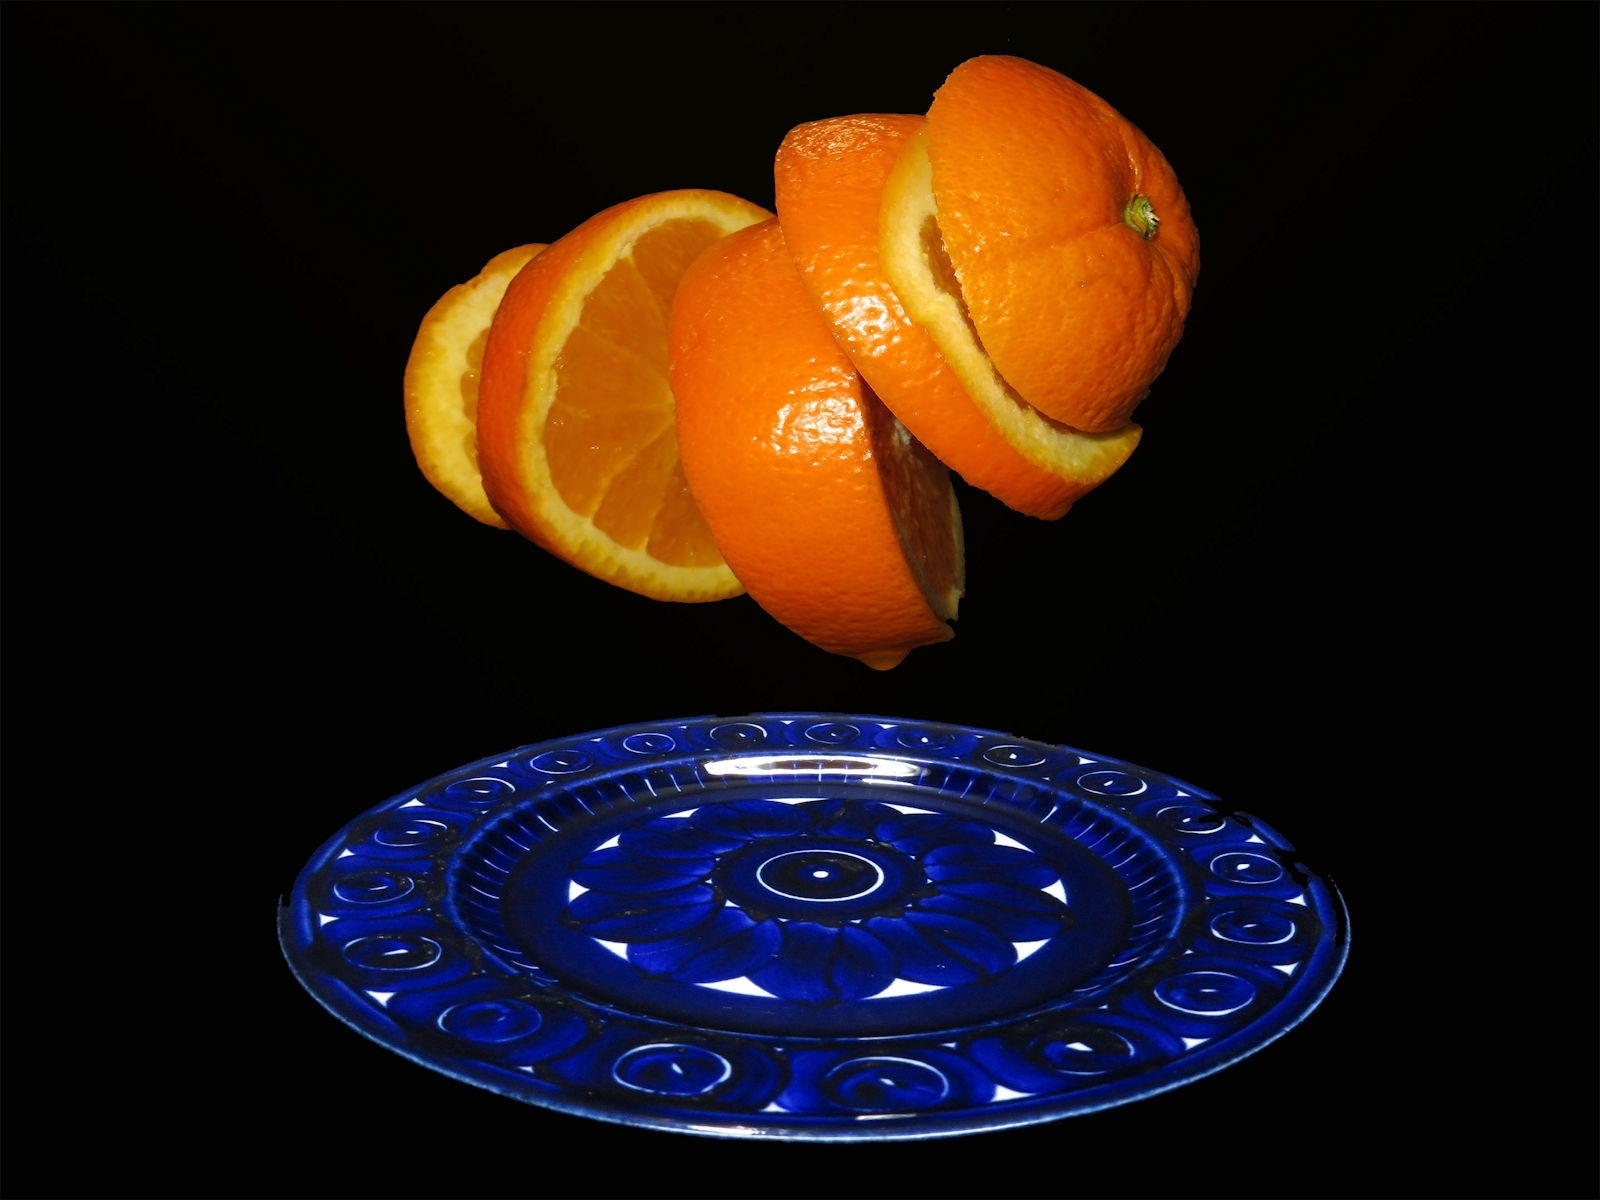 'Blue Plate with Orange slices' (CB 1 Place) by Eric Aker - SC